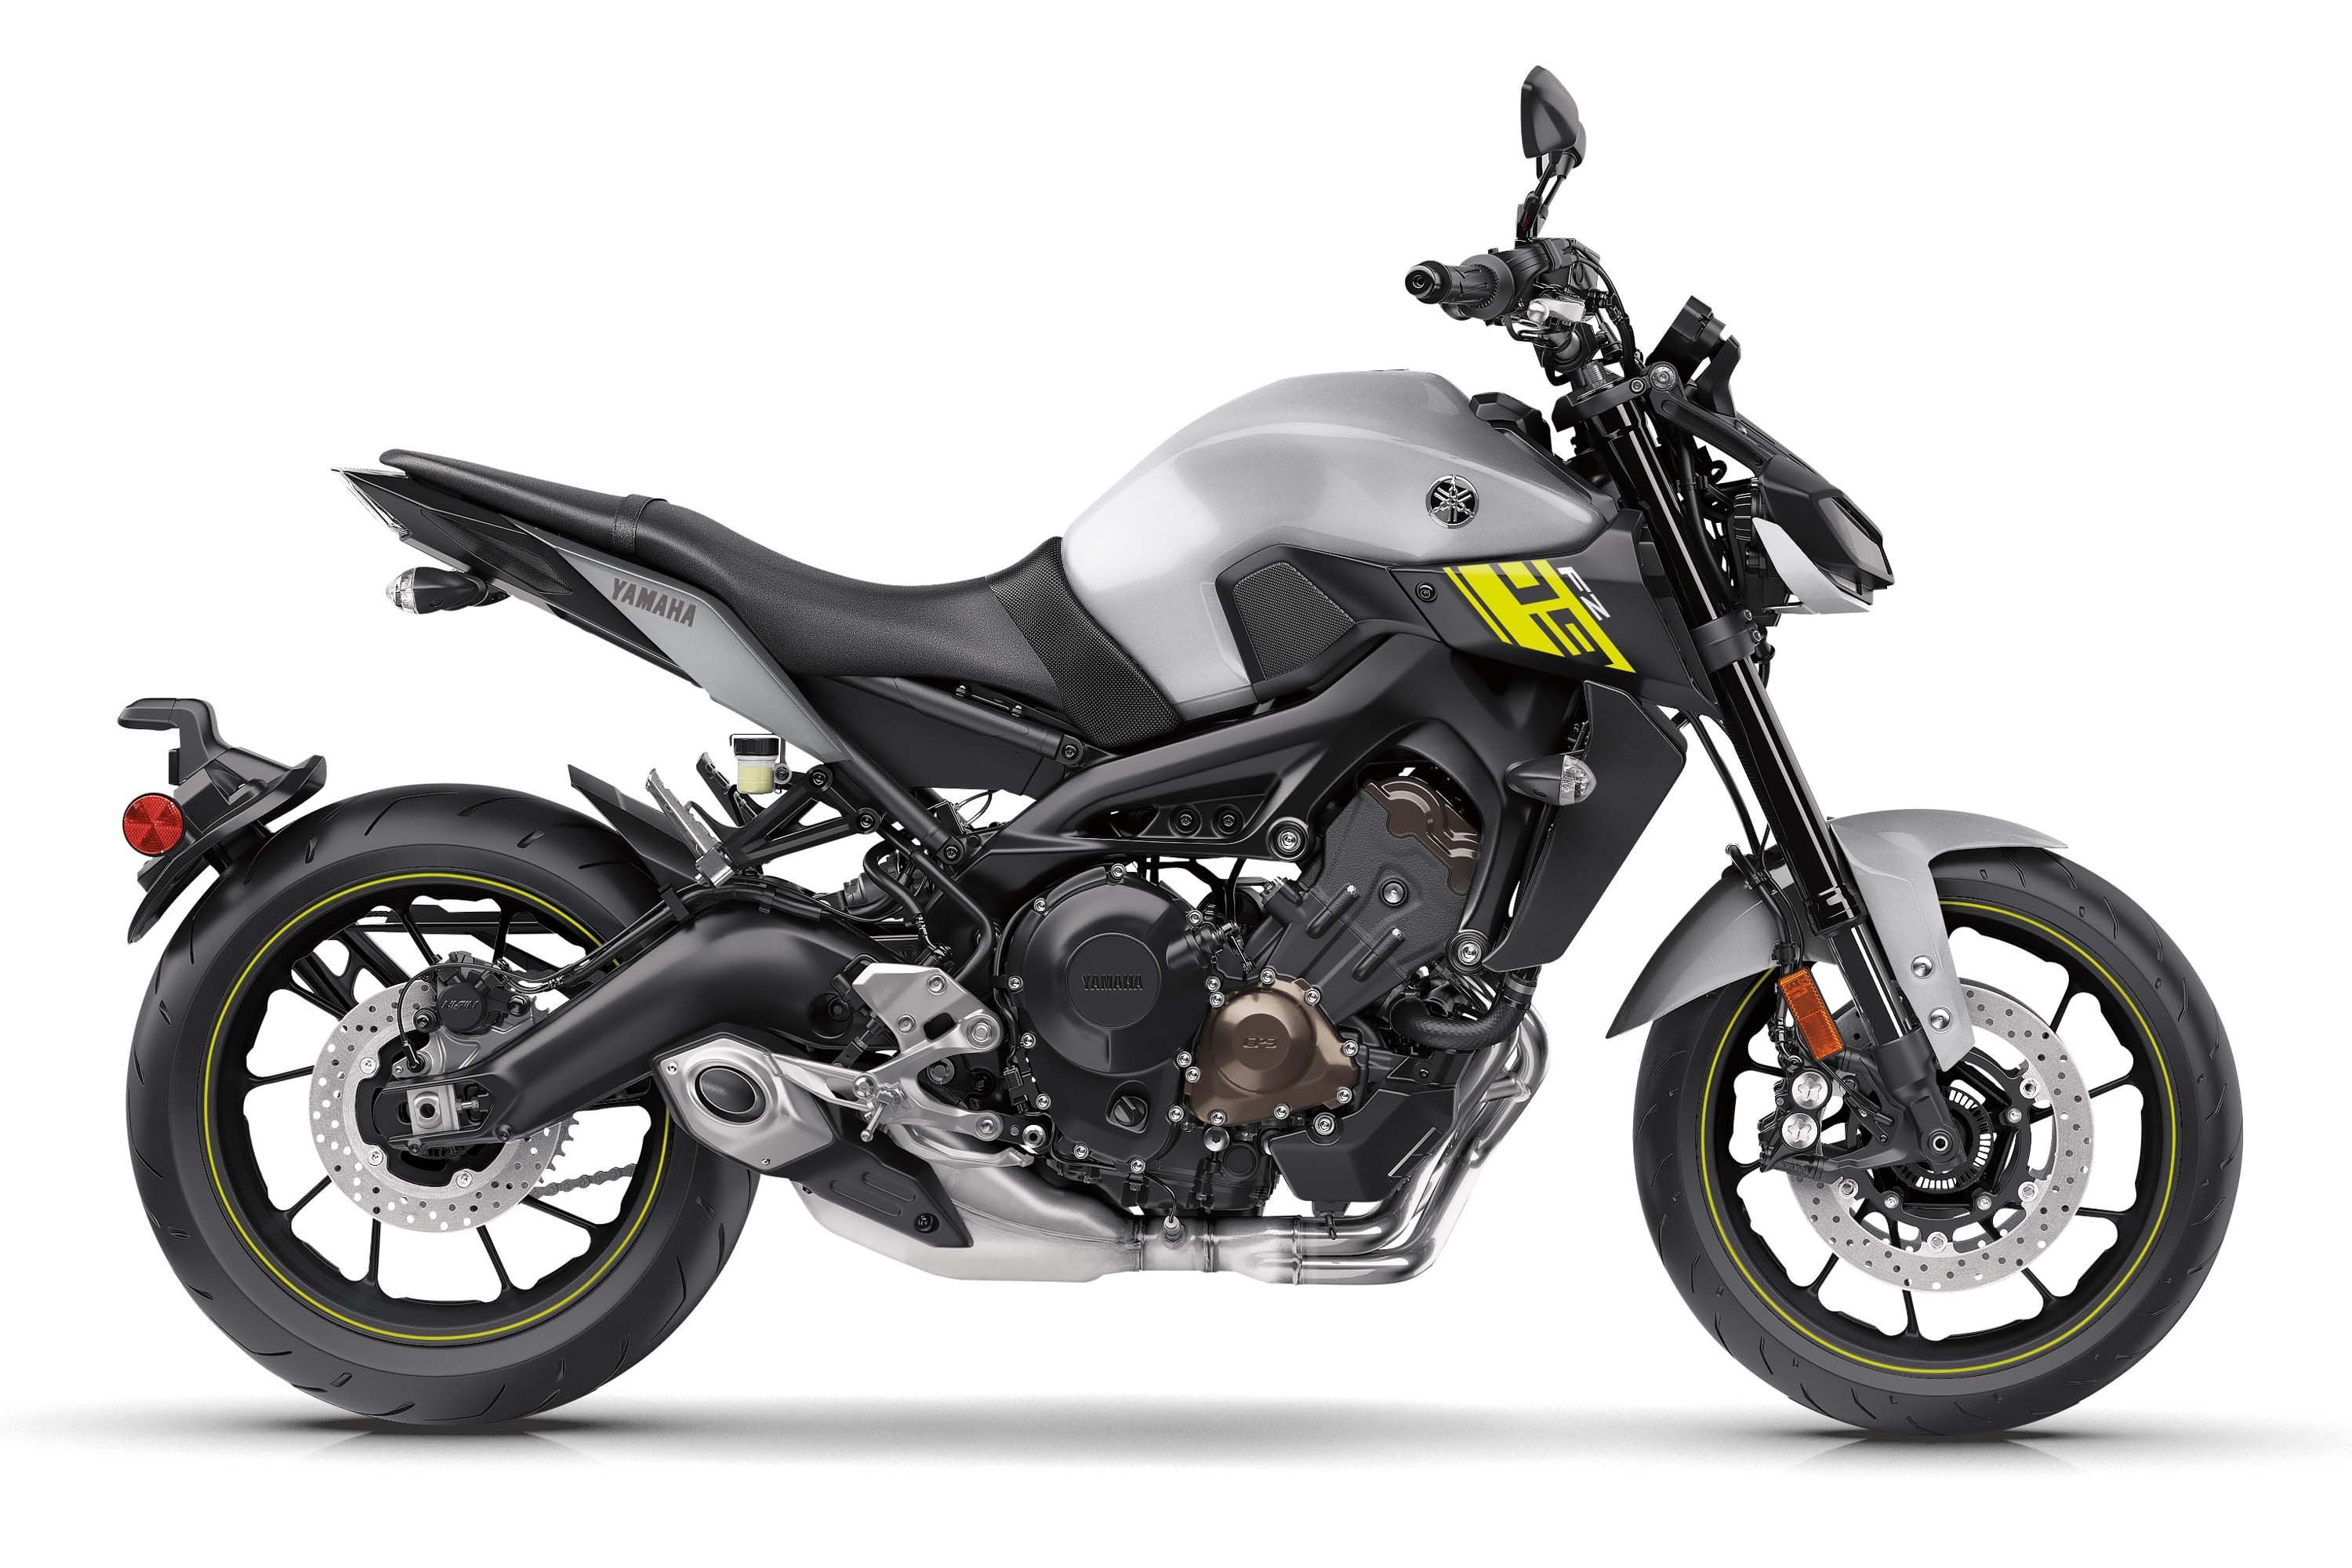 Expect to see the 2017 Yamaha FZ-09 hitting dealerships starting in ...